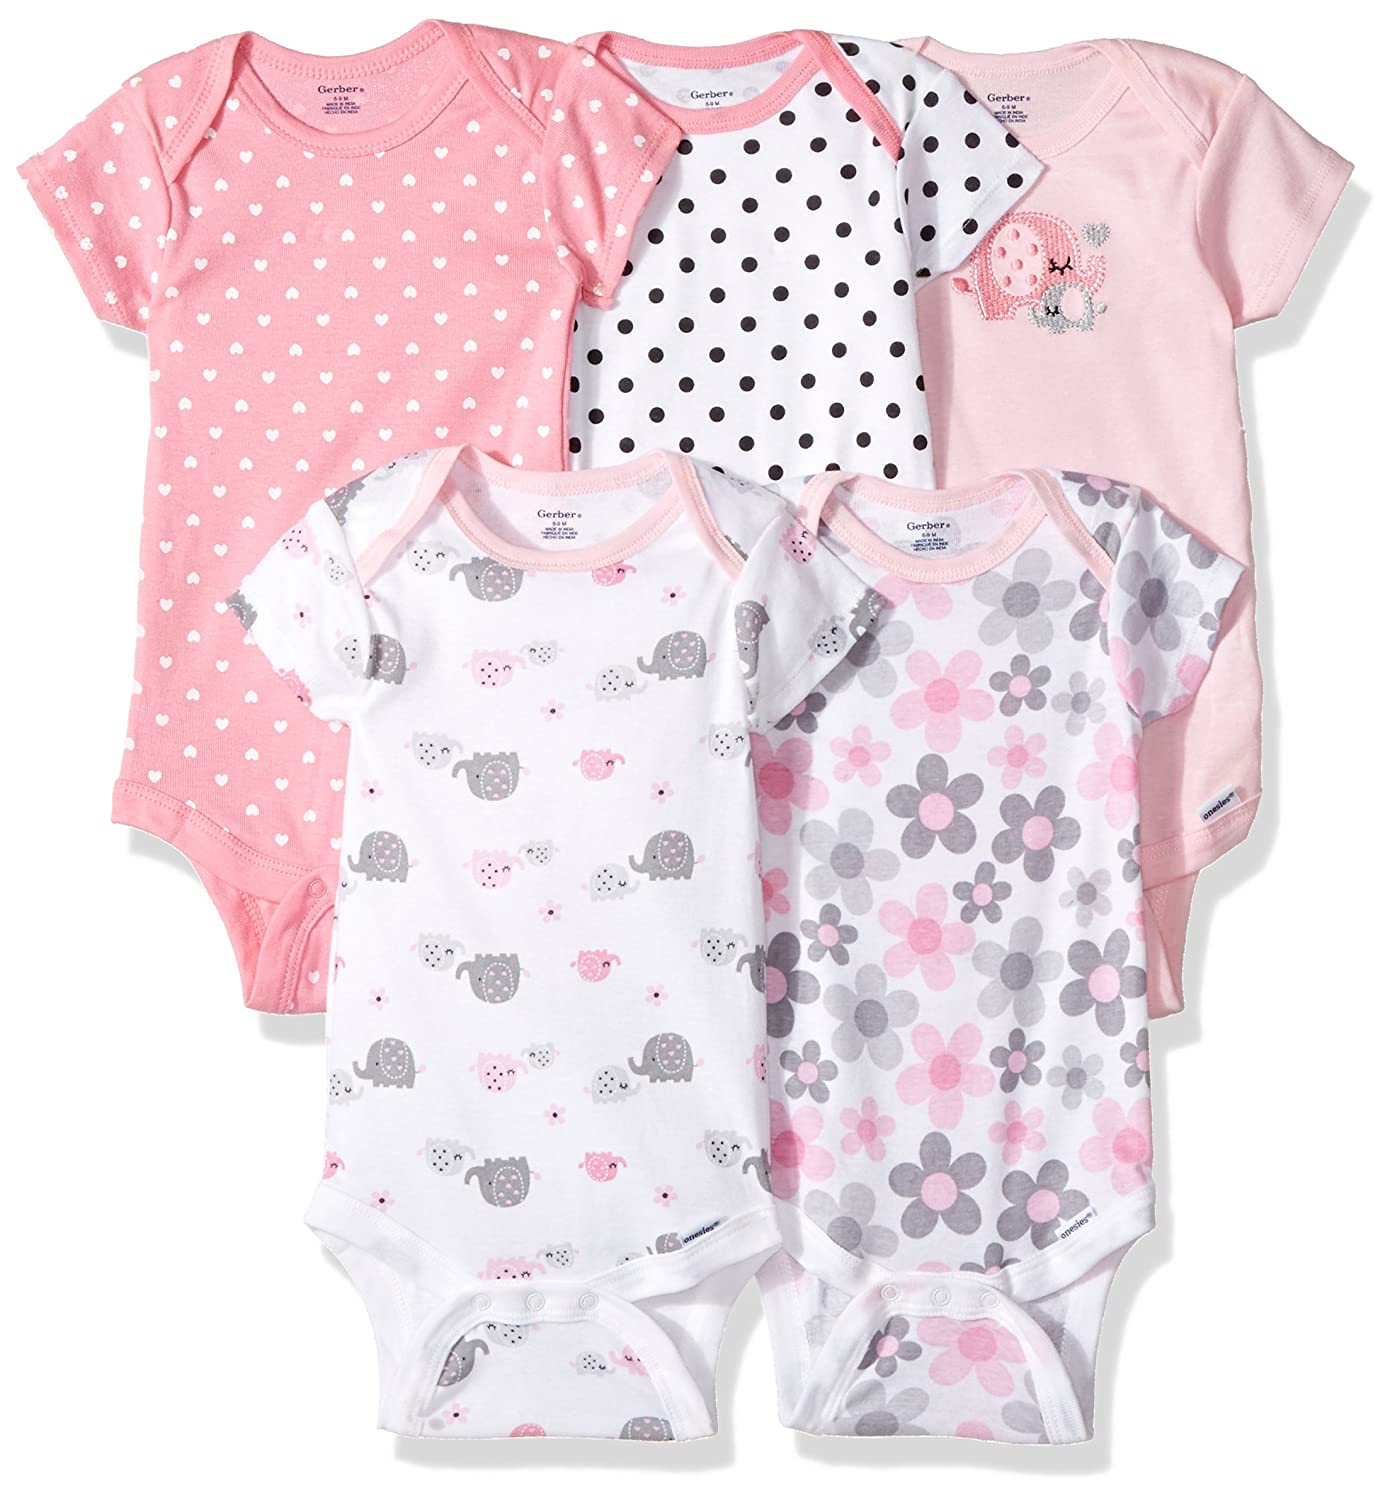 Gerber Baby Girls 5 Pack Onesies, Elephants/Flowers, Newborn 81884516AGR303M